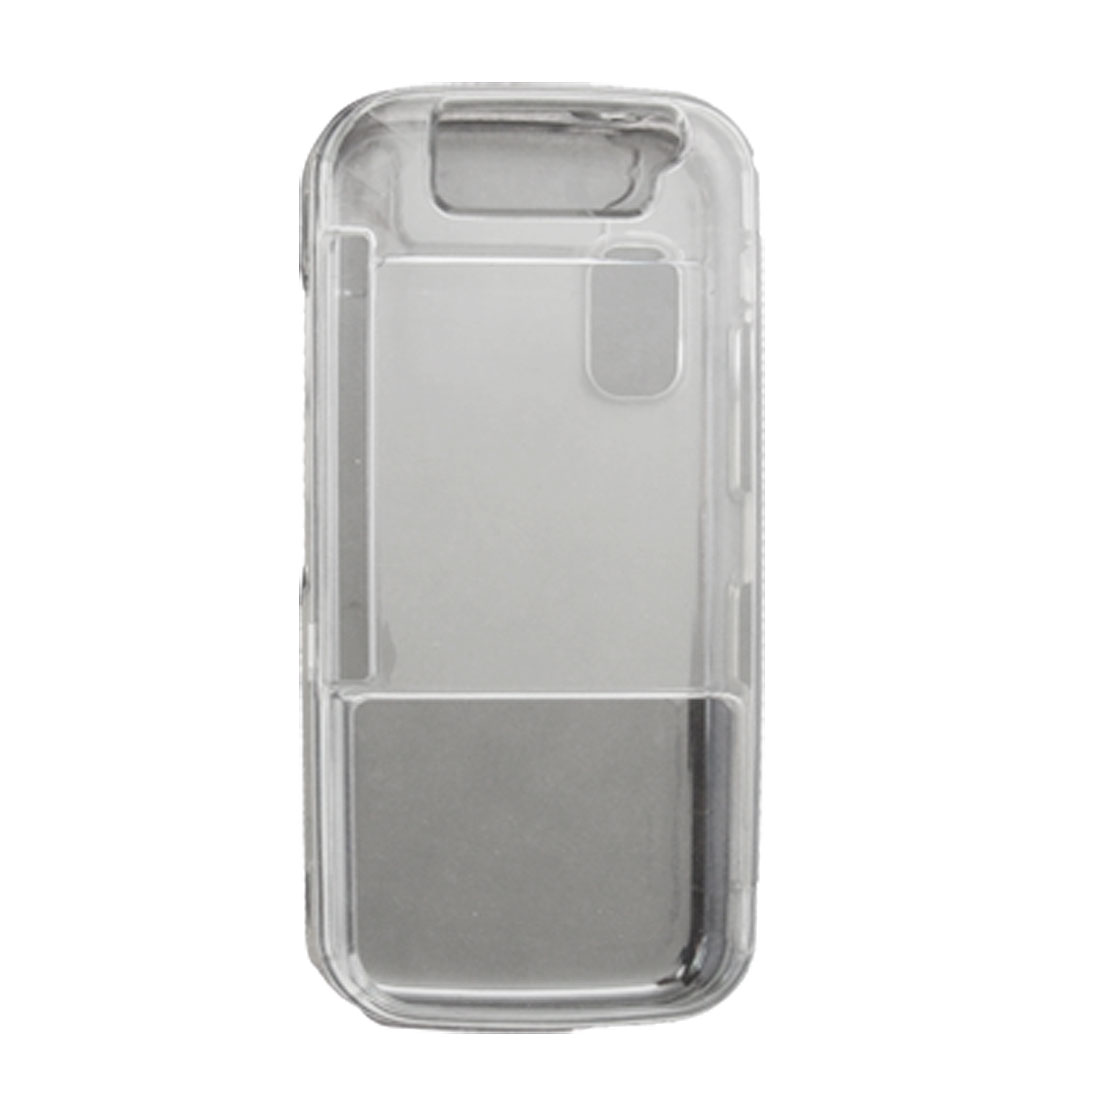 Clear Hard Plastic Case Cover Guard for Nokia 5730